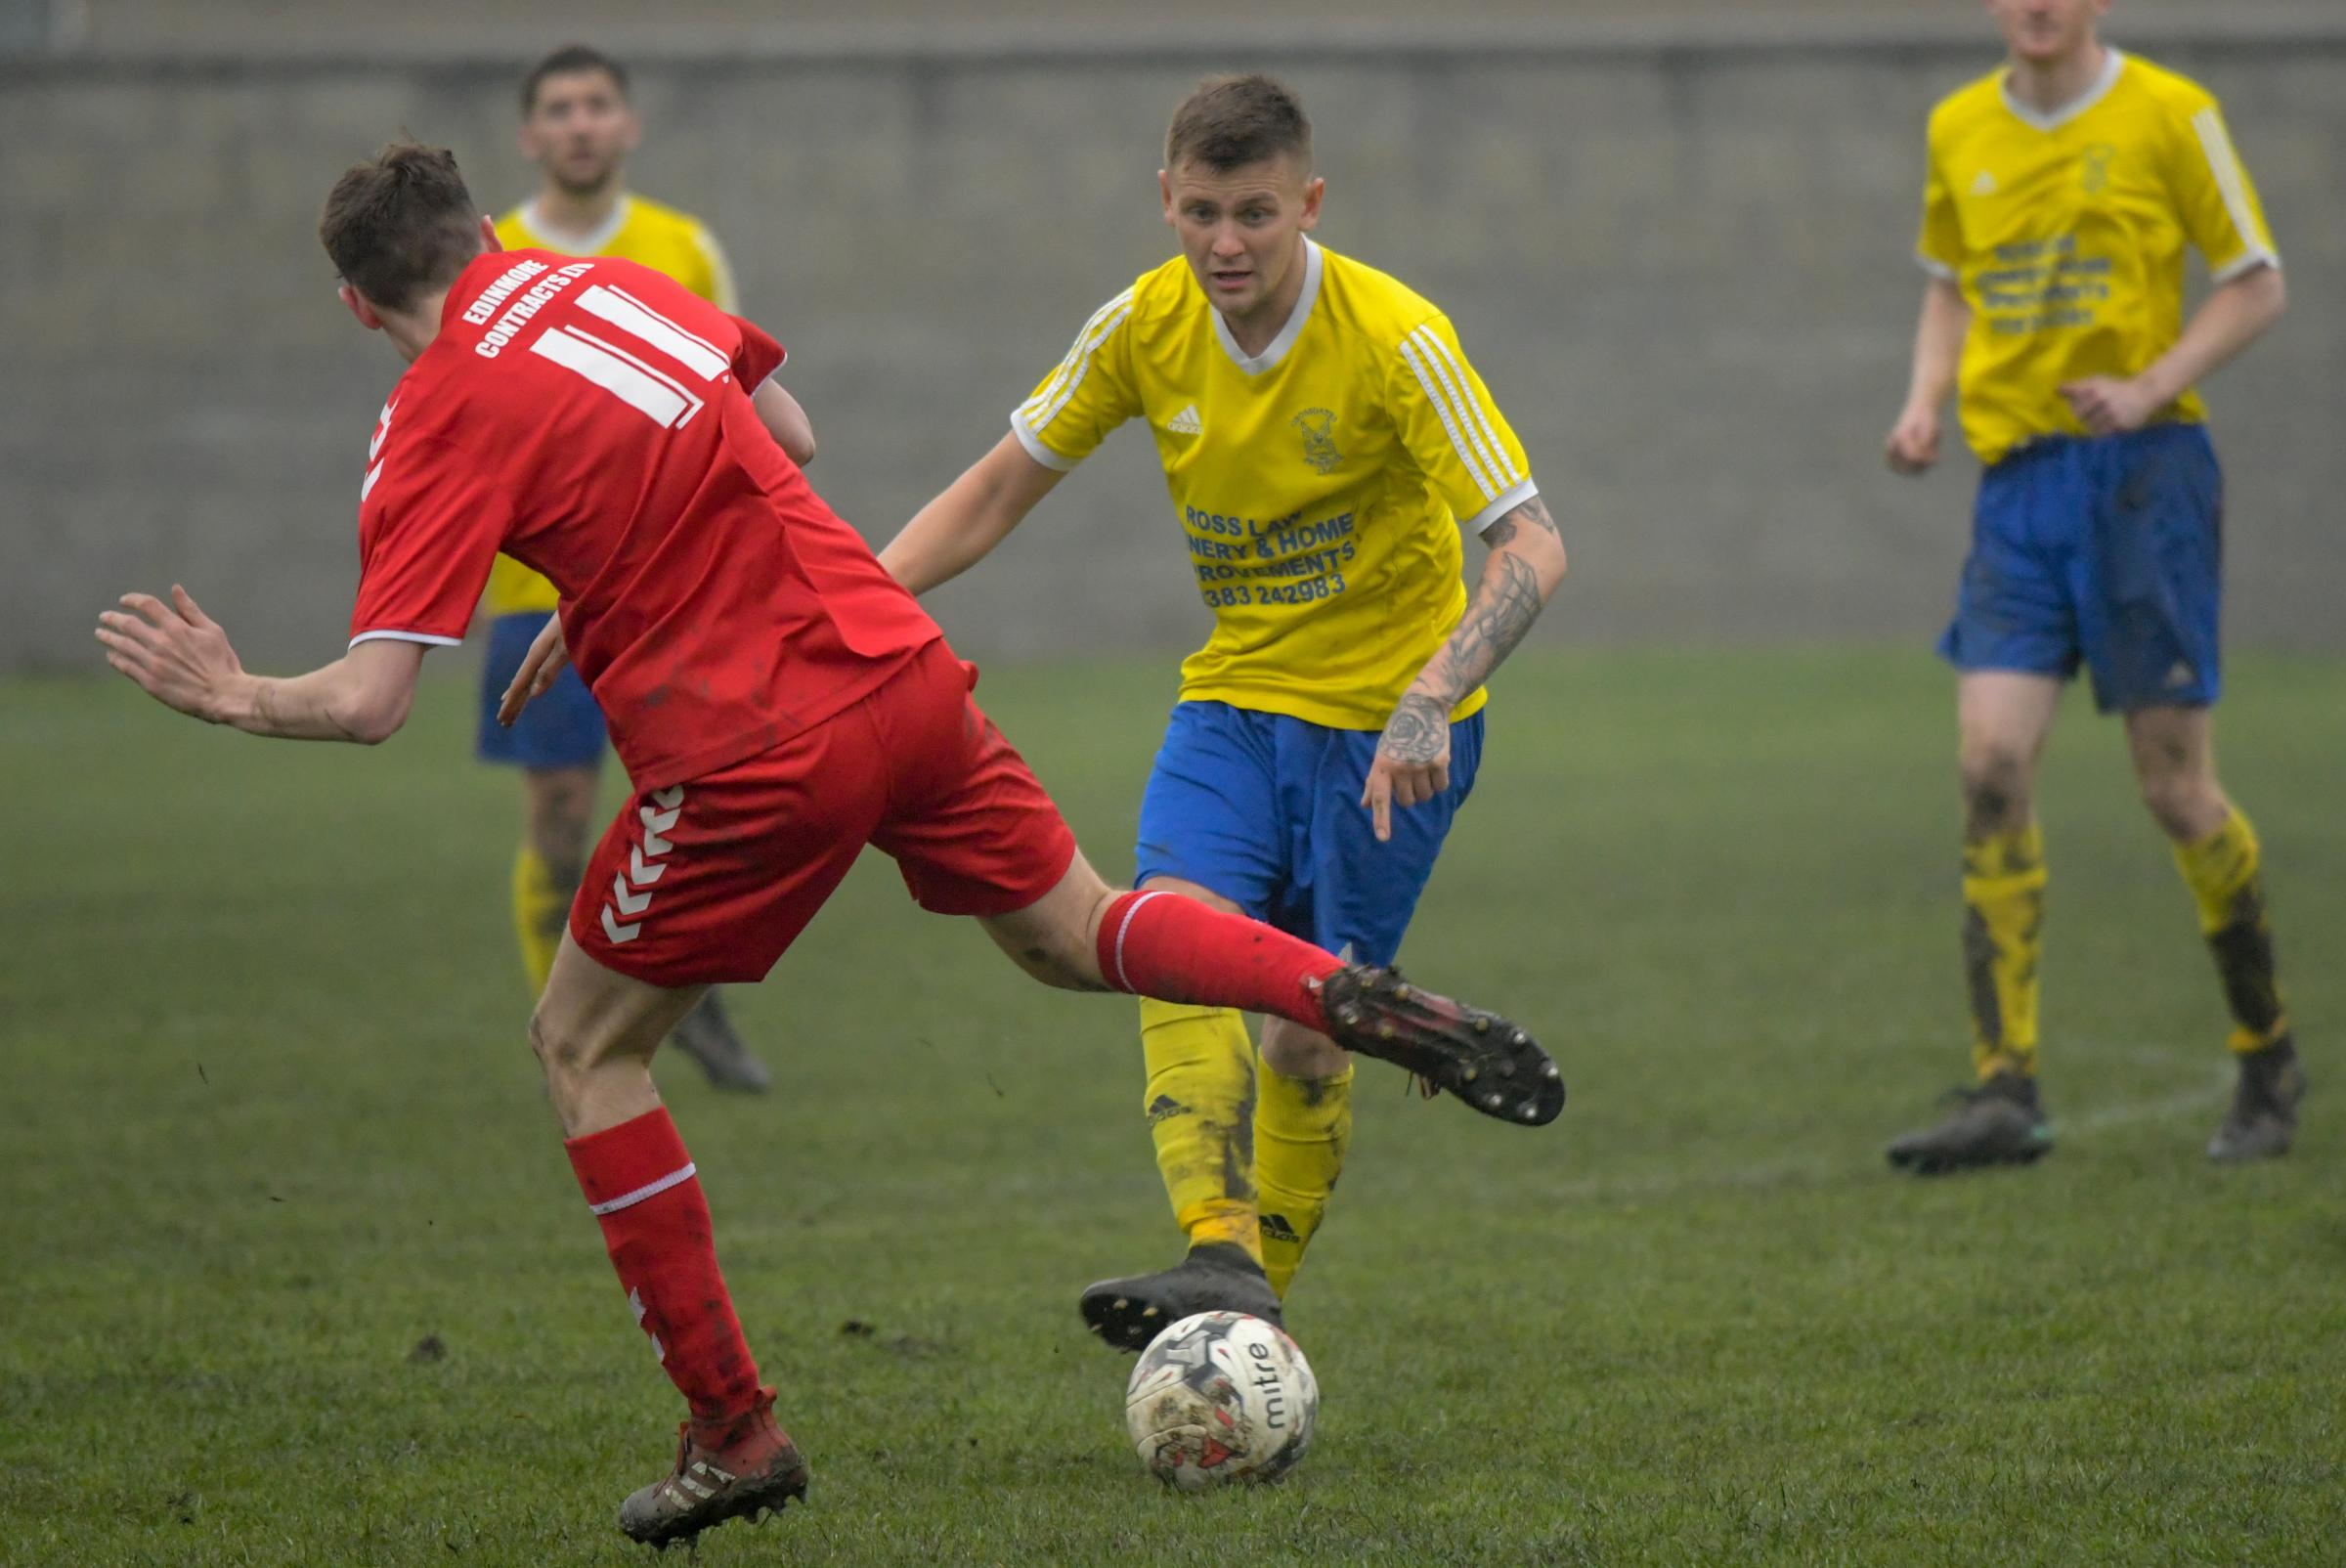 Crossgates Primrose remain on target for a place in the East of Scotland Premier League. Photo: Jim Payne.